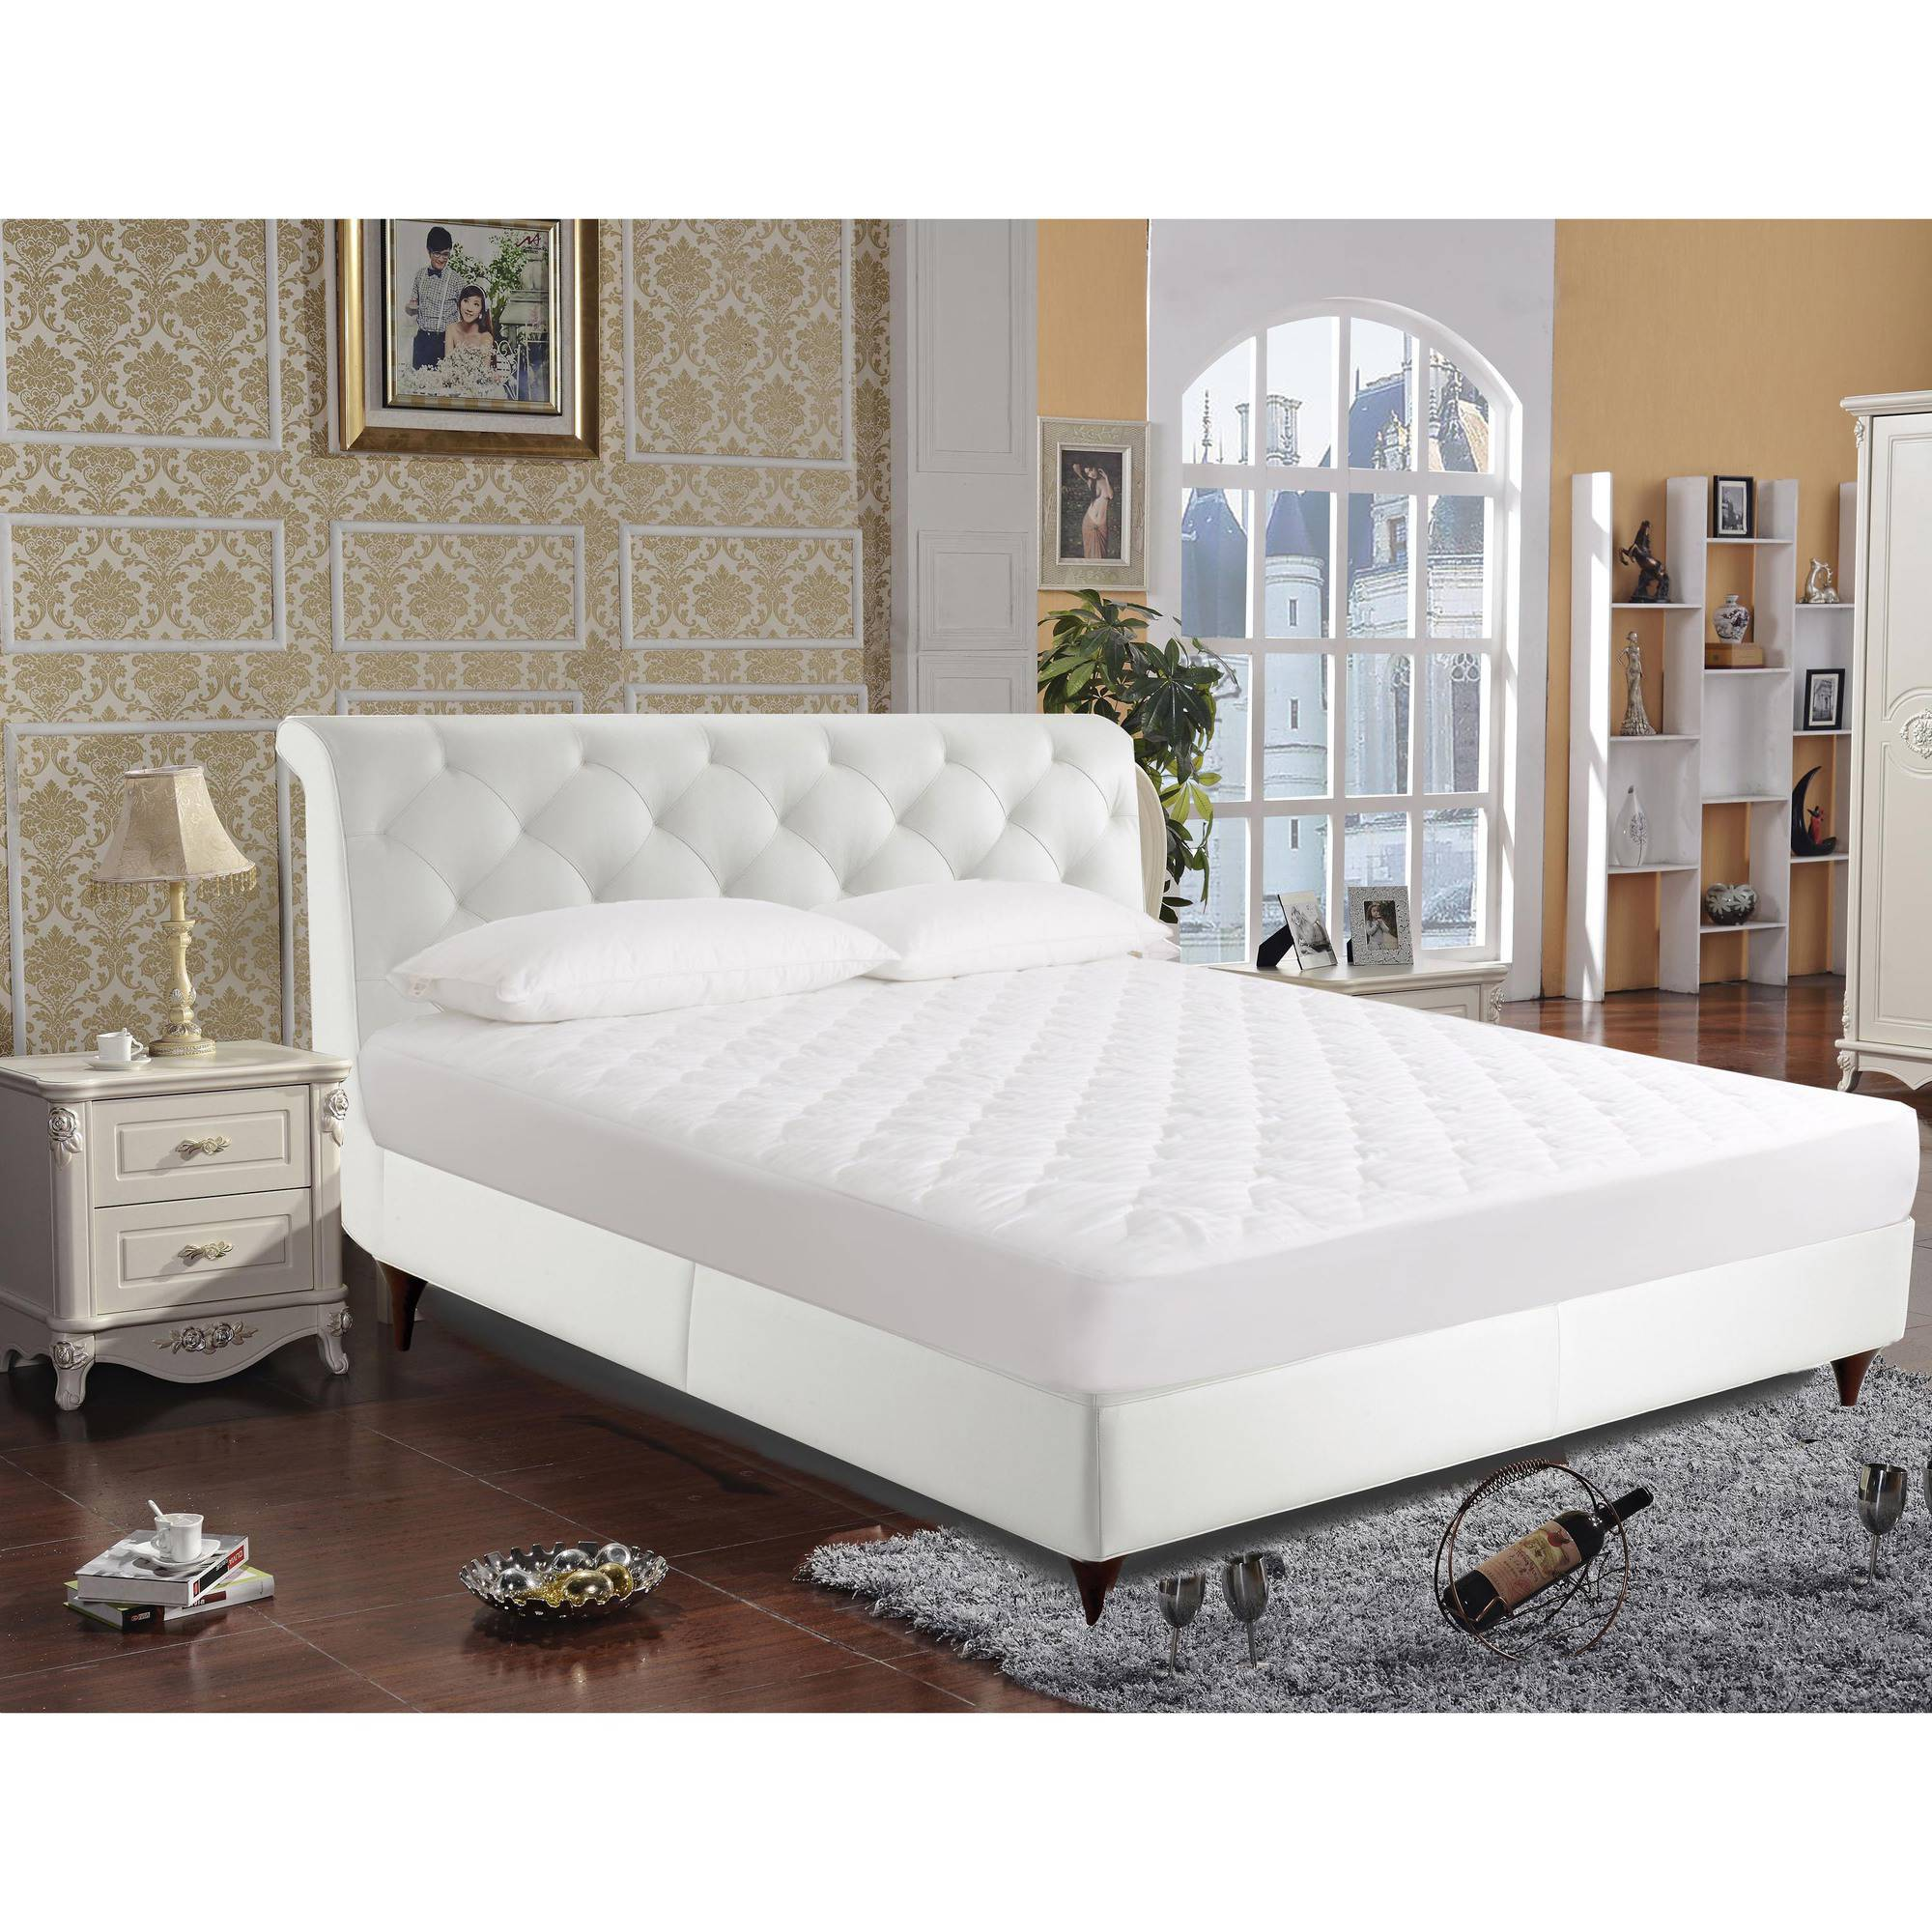 Quiet Comfort Waterproof Mattress Pad Walmartcom